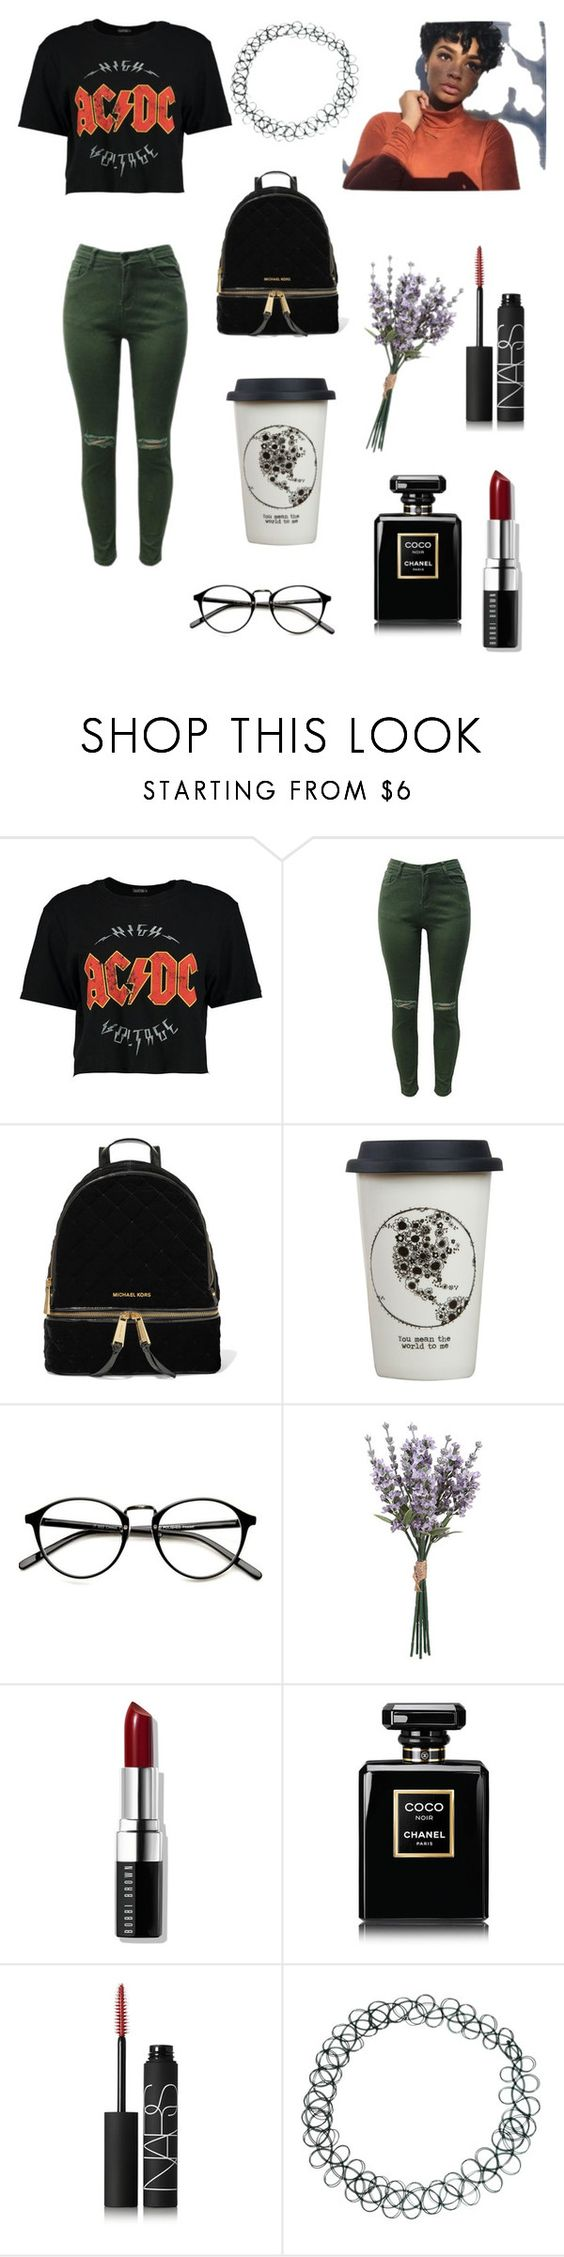 """""""NEW OUTFIT"""" by lenakenzie ❤ liked on Polyvore featuring Boohoo, MICHAEL Michael Kors, Natural Life, Bobbi Brown Cosmetics, Chanel, NARS Cosmetics and ASOS"""